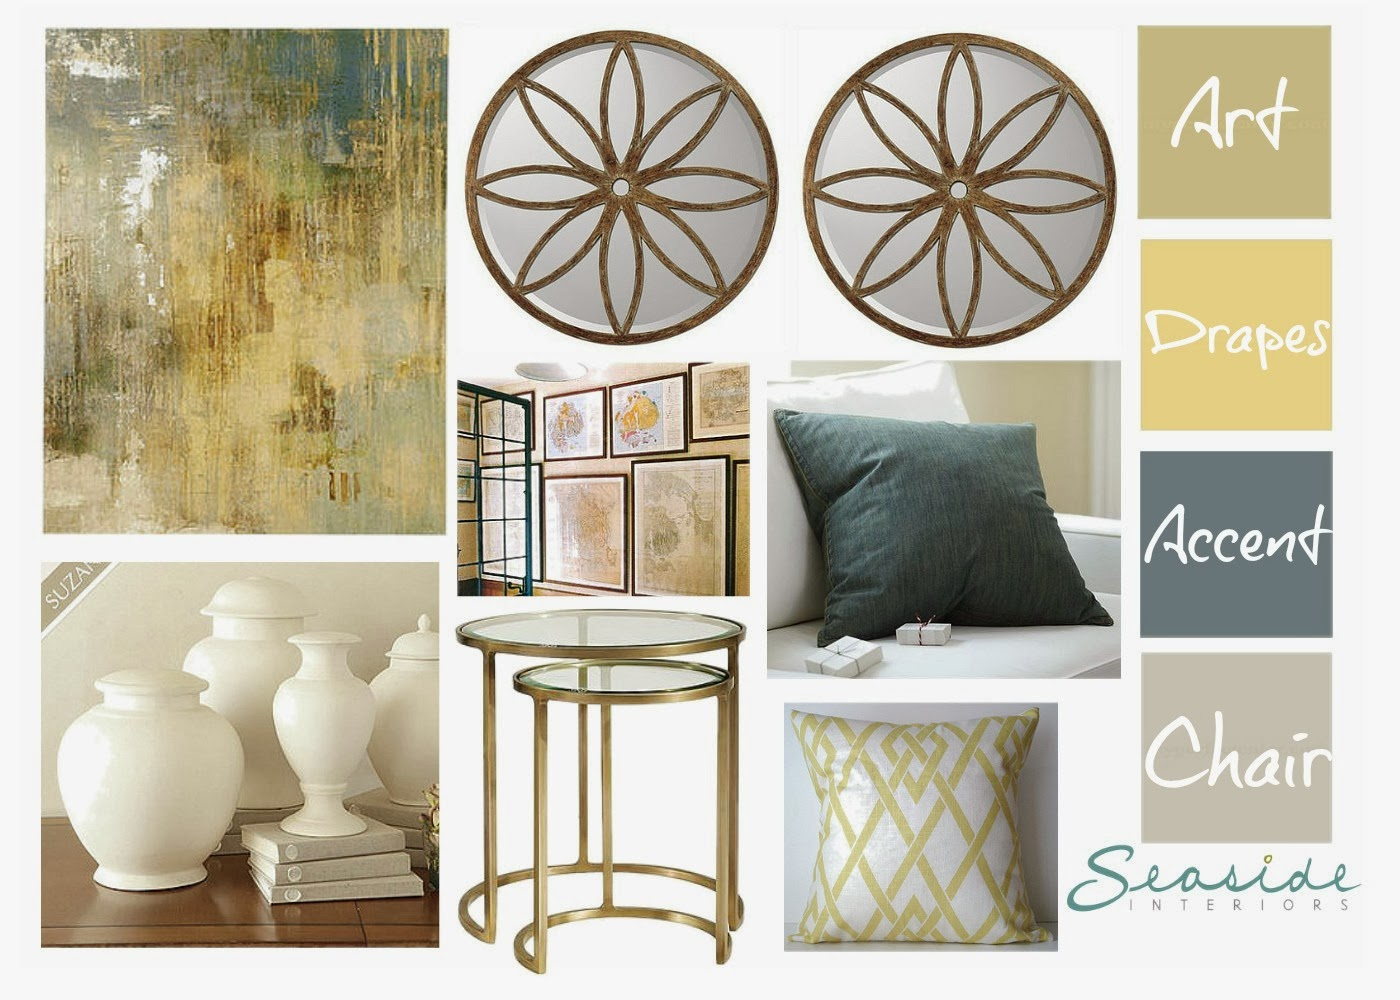 My inspiration came from these beautiful deep golden drapes that are already in the room